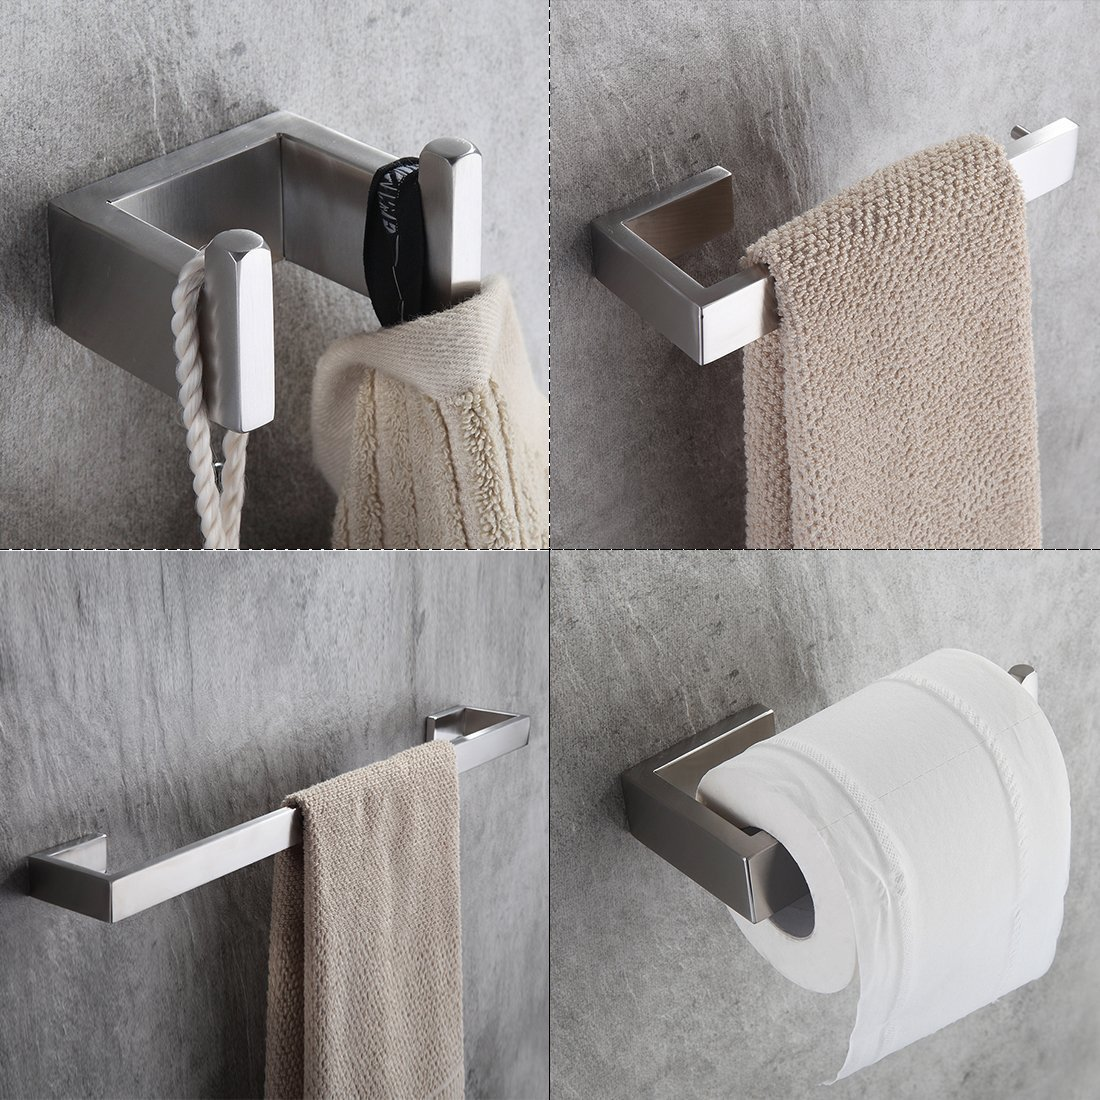 4 Piece/set 304 Stainless Steel Bath Hardware Sets Bathroom Accessories Set Single Towel Bar, Robe Hook, Paper Holder